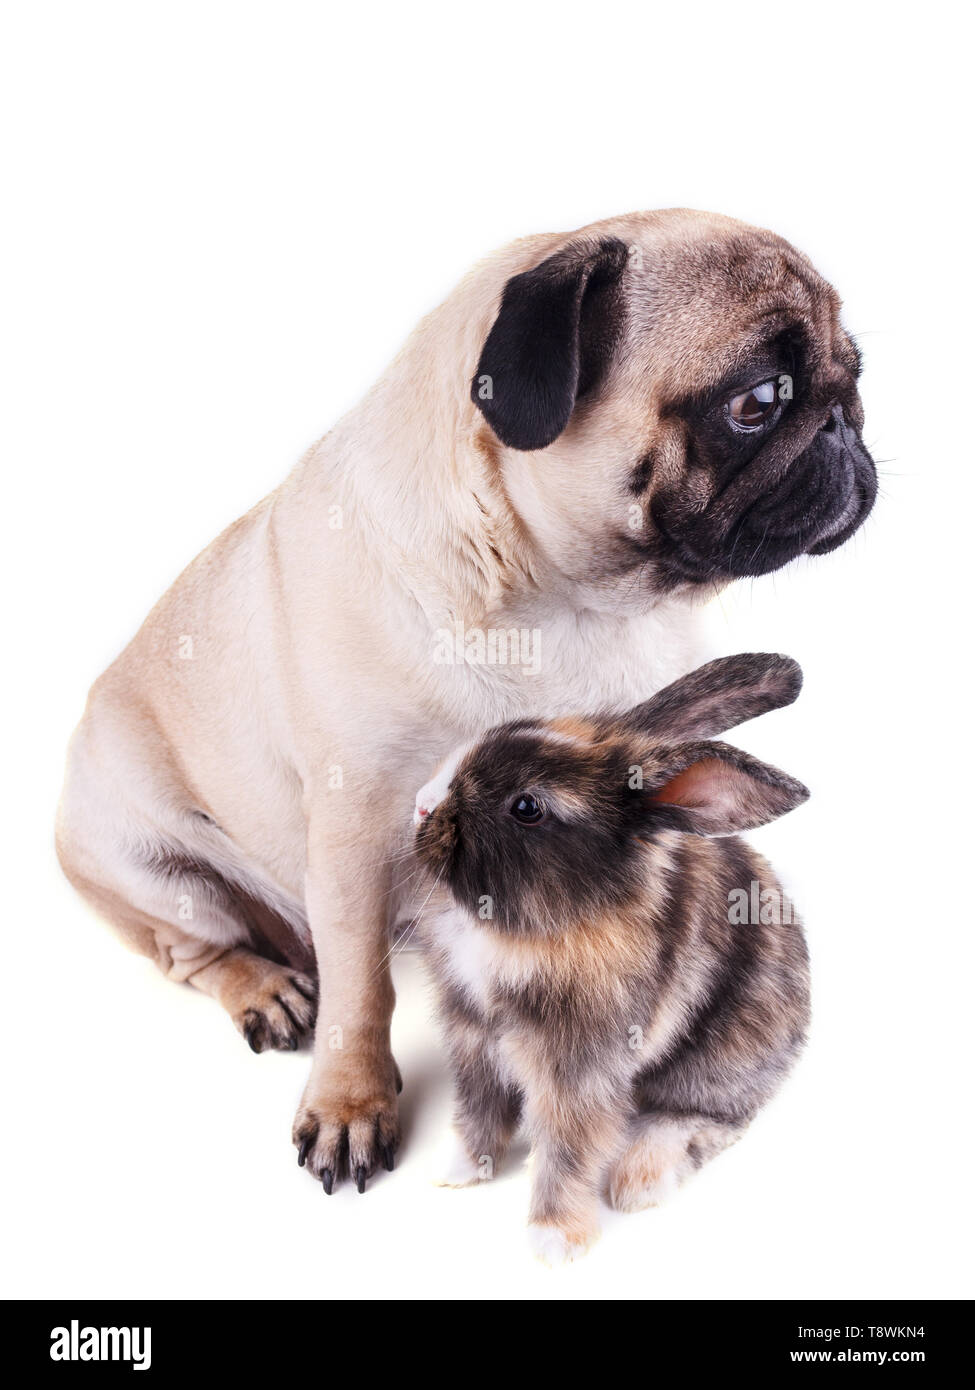 Dog pug and tricolor rabbit on a white background - Stock Image